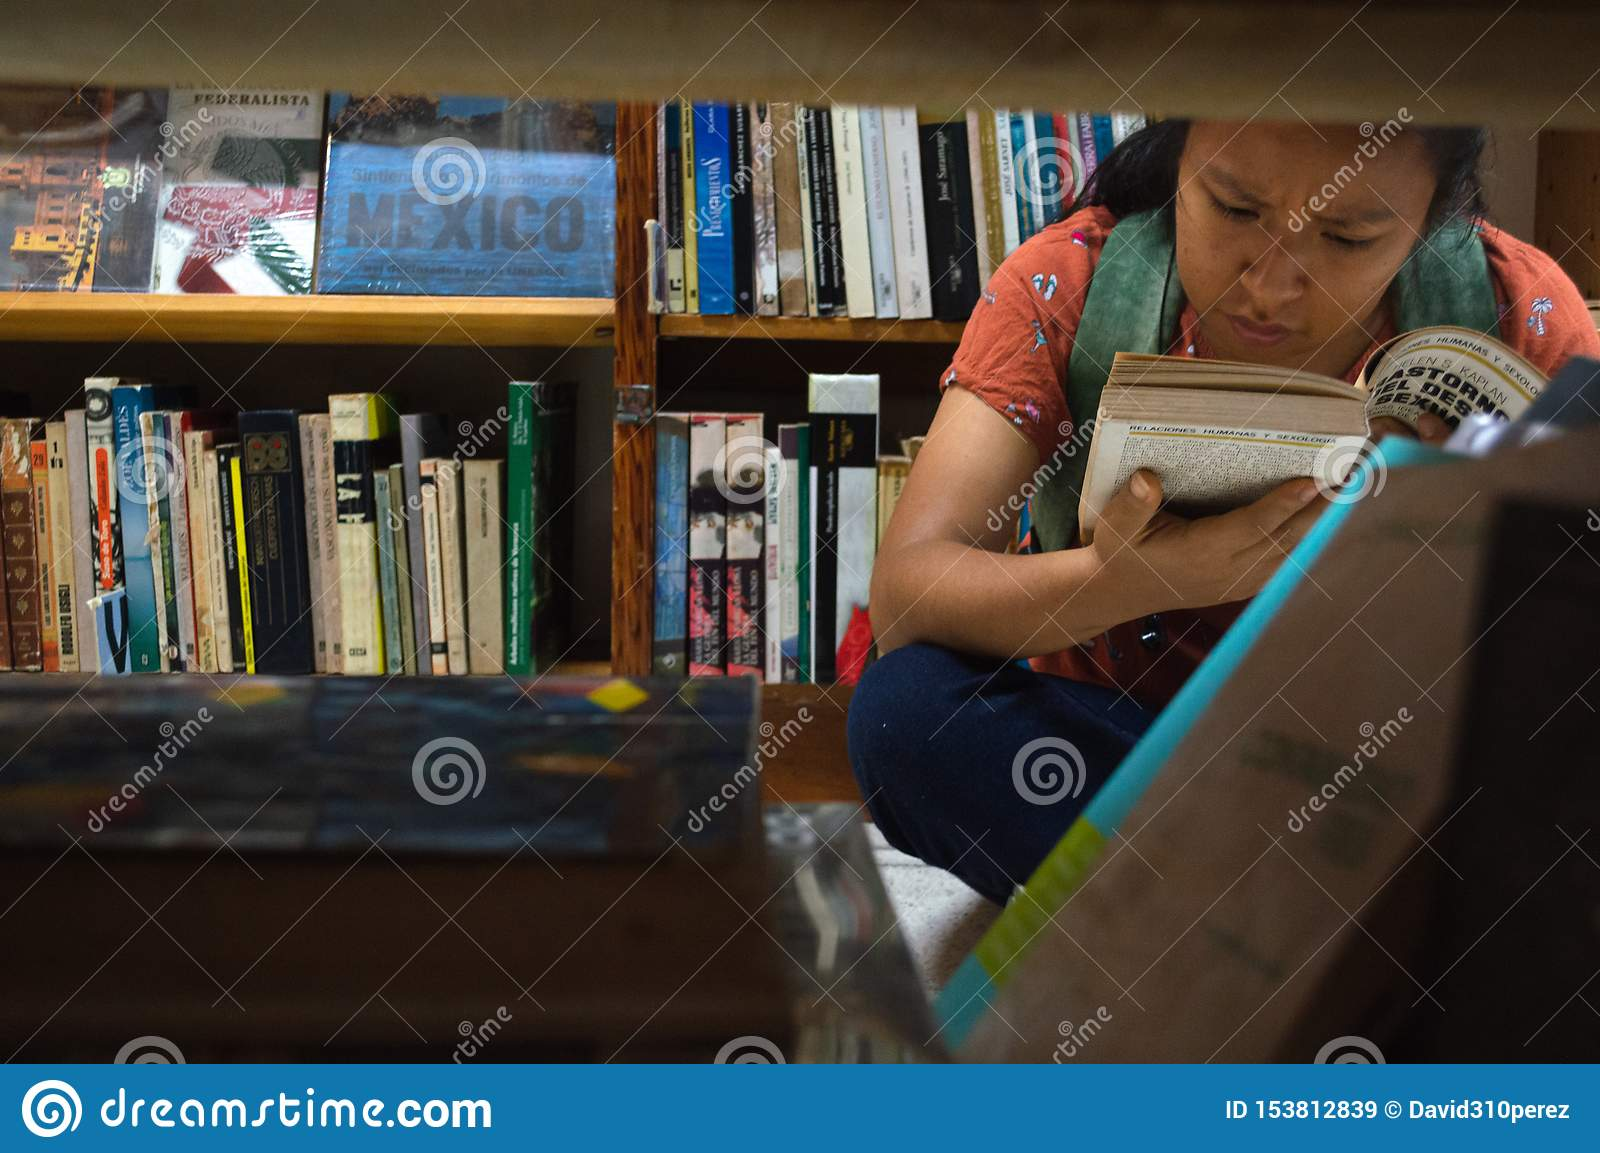 Black woman with book in her hands in a library